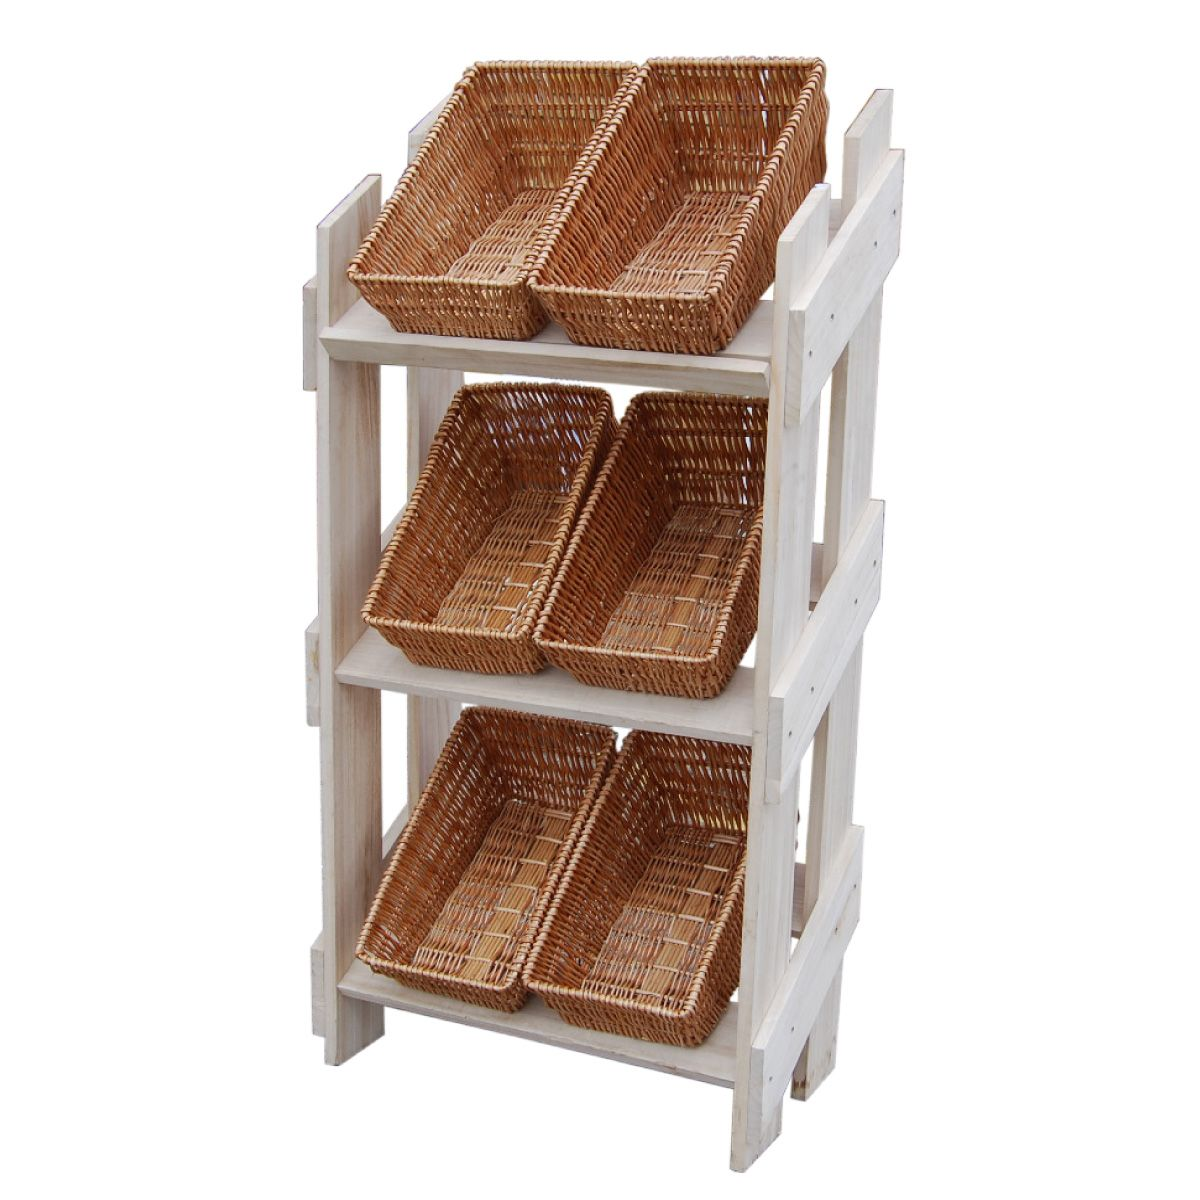 Exhibition Stand Wood : Wooden retail display stand with wicker baskets buy